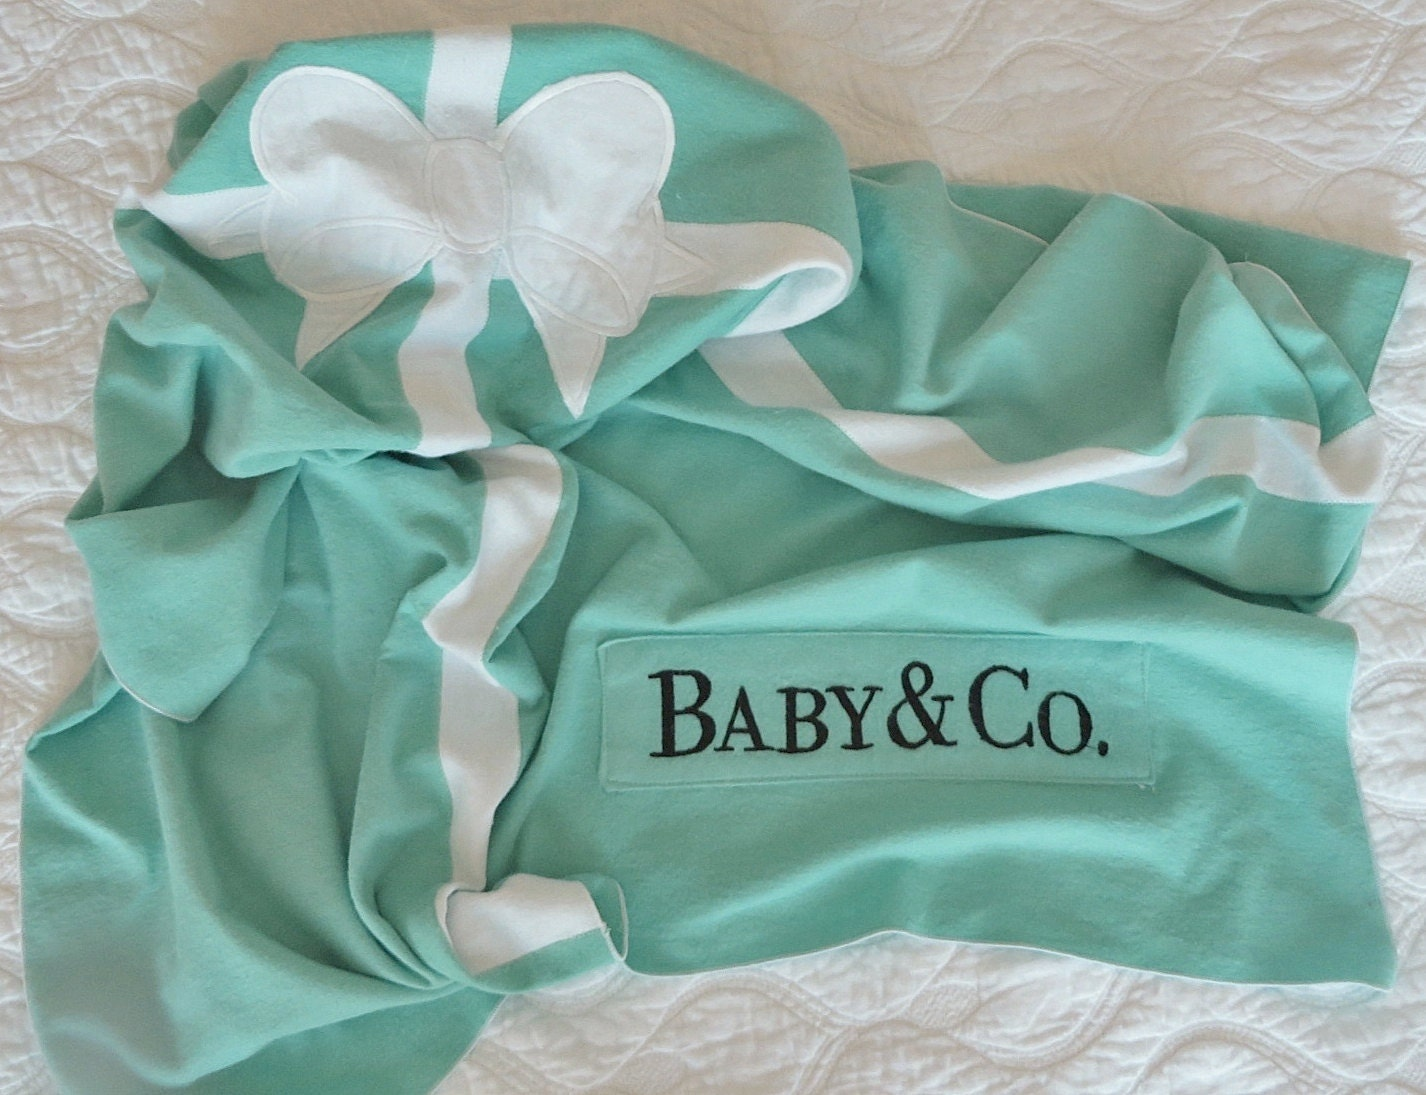 Baby Blanket Gift Box : Gift box baby blanket with sweet white by blue